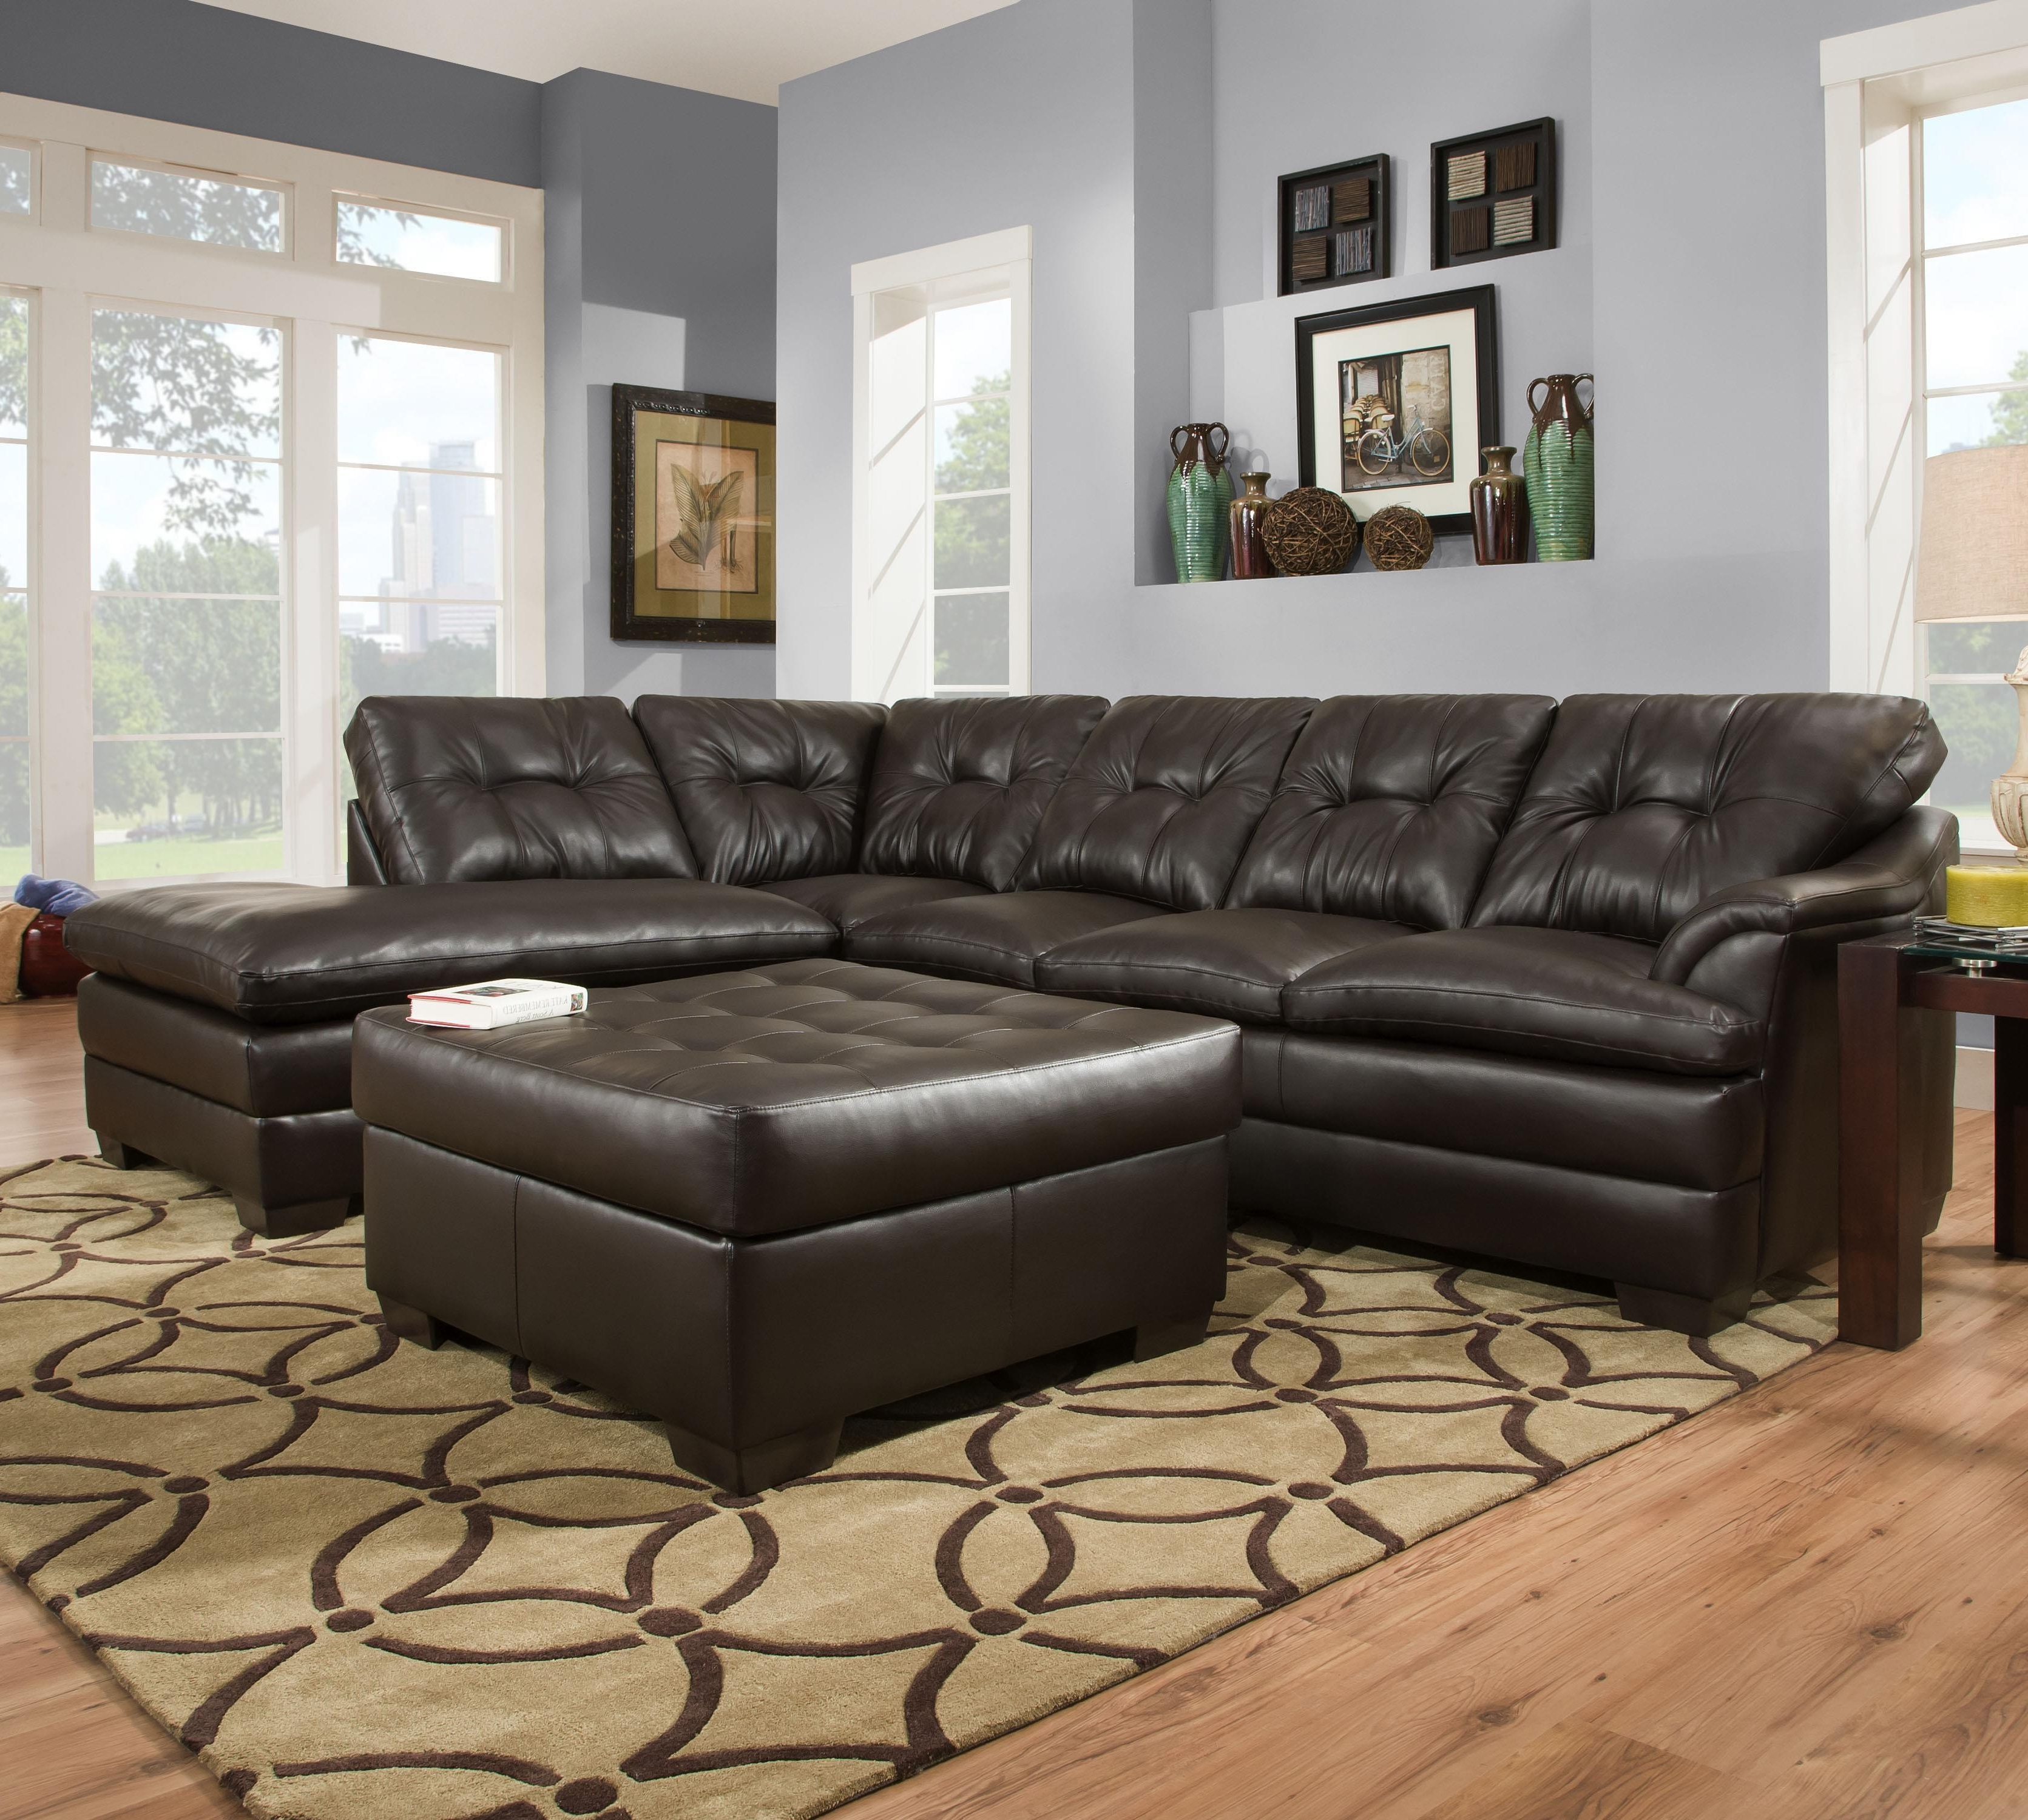 Jackson Tn Sectional Sofas for Most Current Furniture : Royal Furniture Jackson Tn Fresh American Furniture